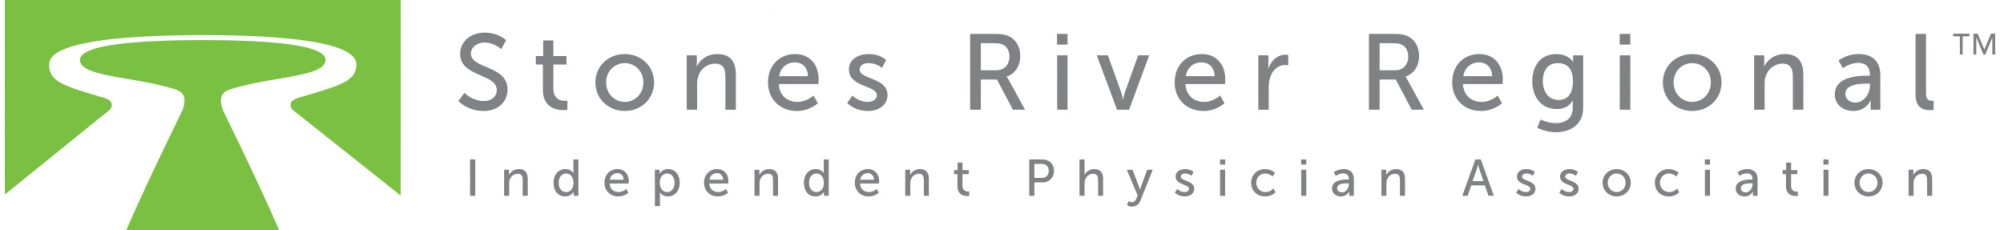 Stones River Regional Independant Physician Association